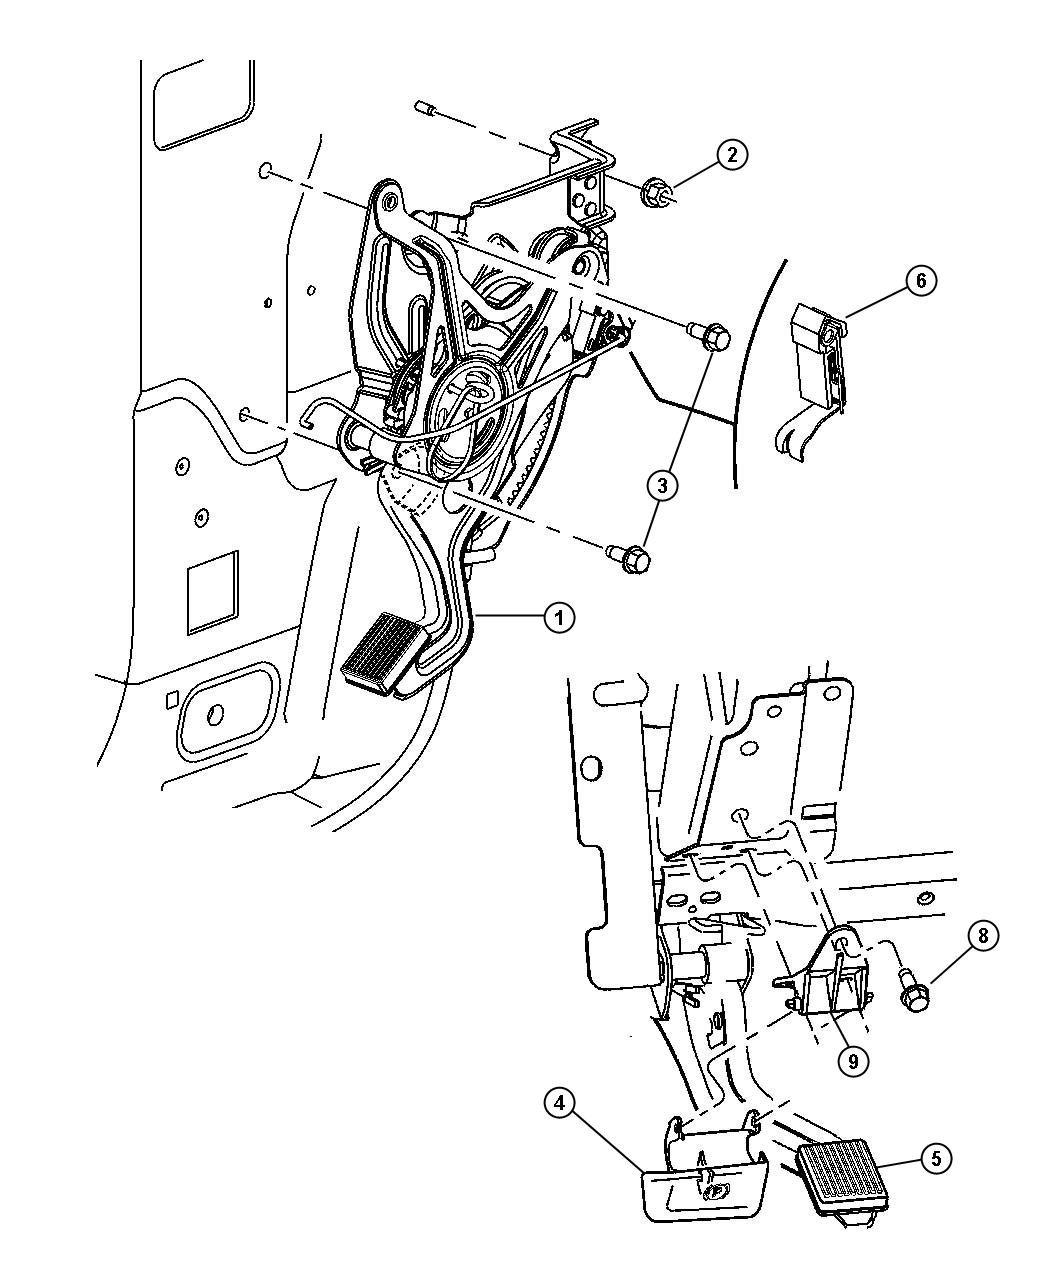 Service manual [2006 Chrysler Pacifica How To Adjust